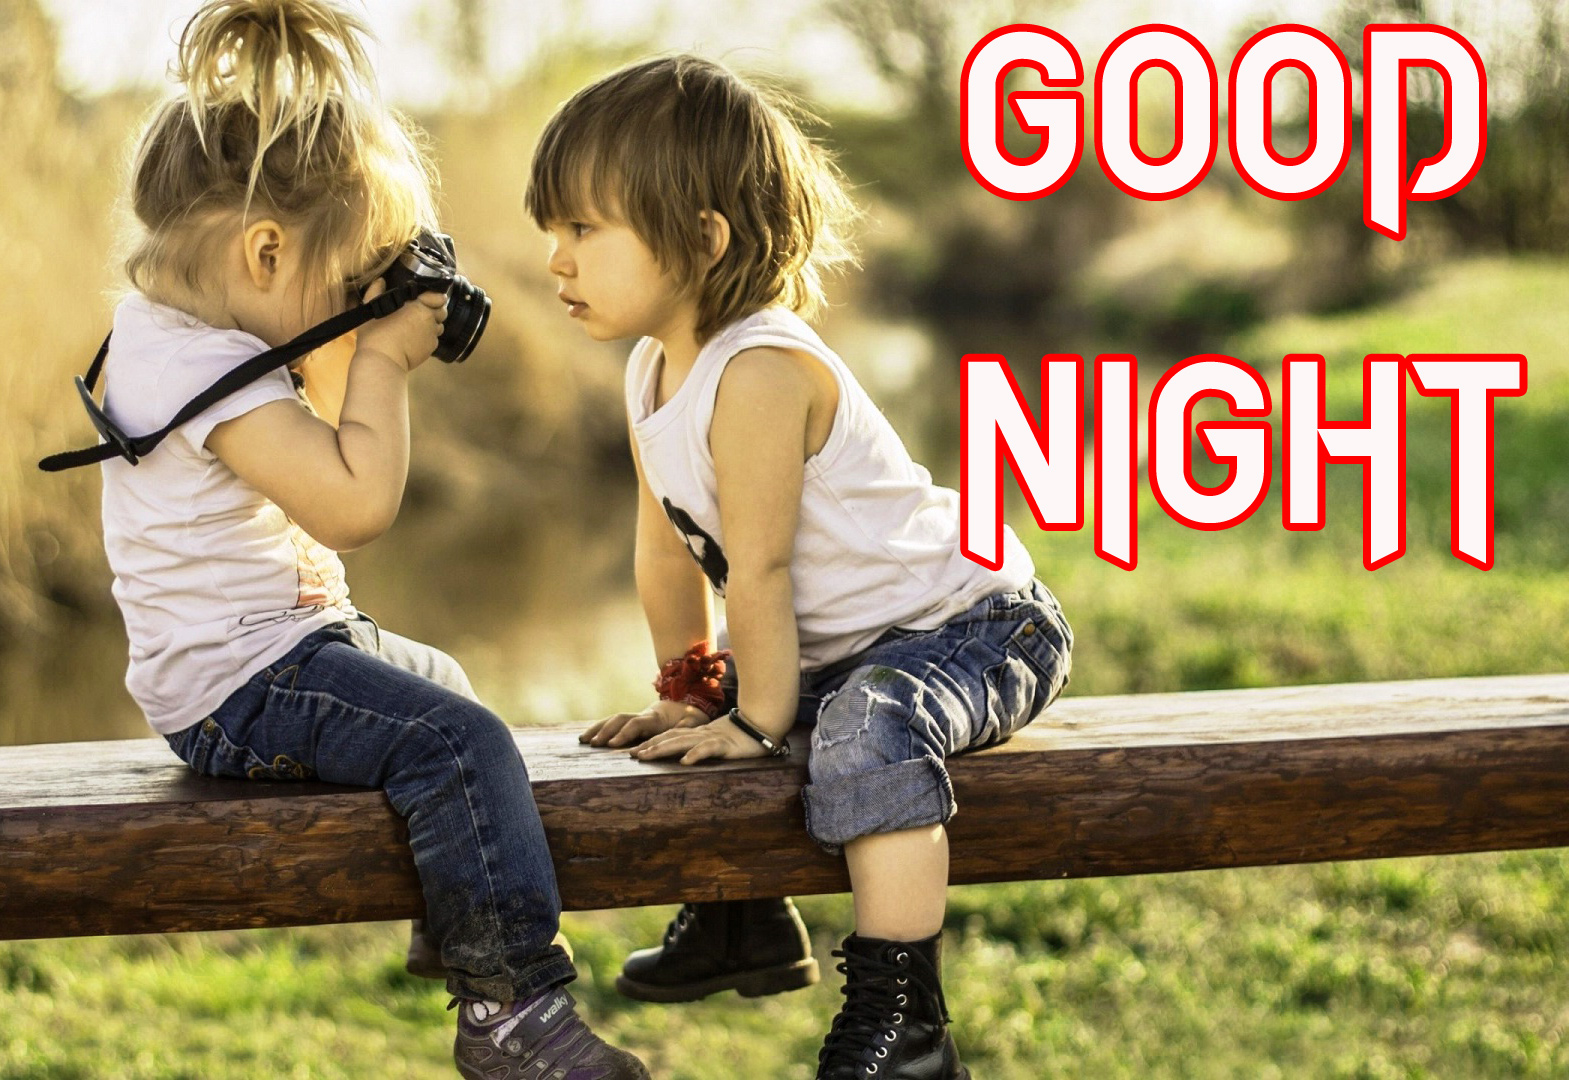 CUTE LOVE  GOOD NIGHT  IMAGES WALLPAPER PICTURES FREE HD